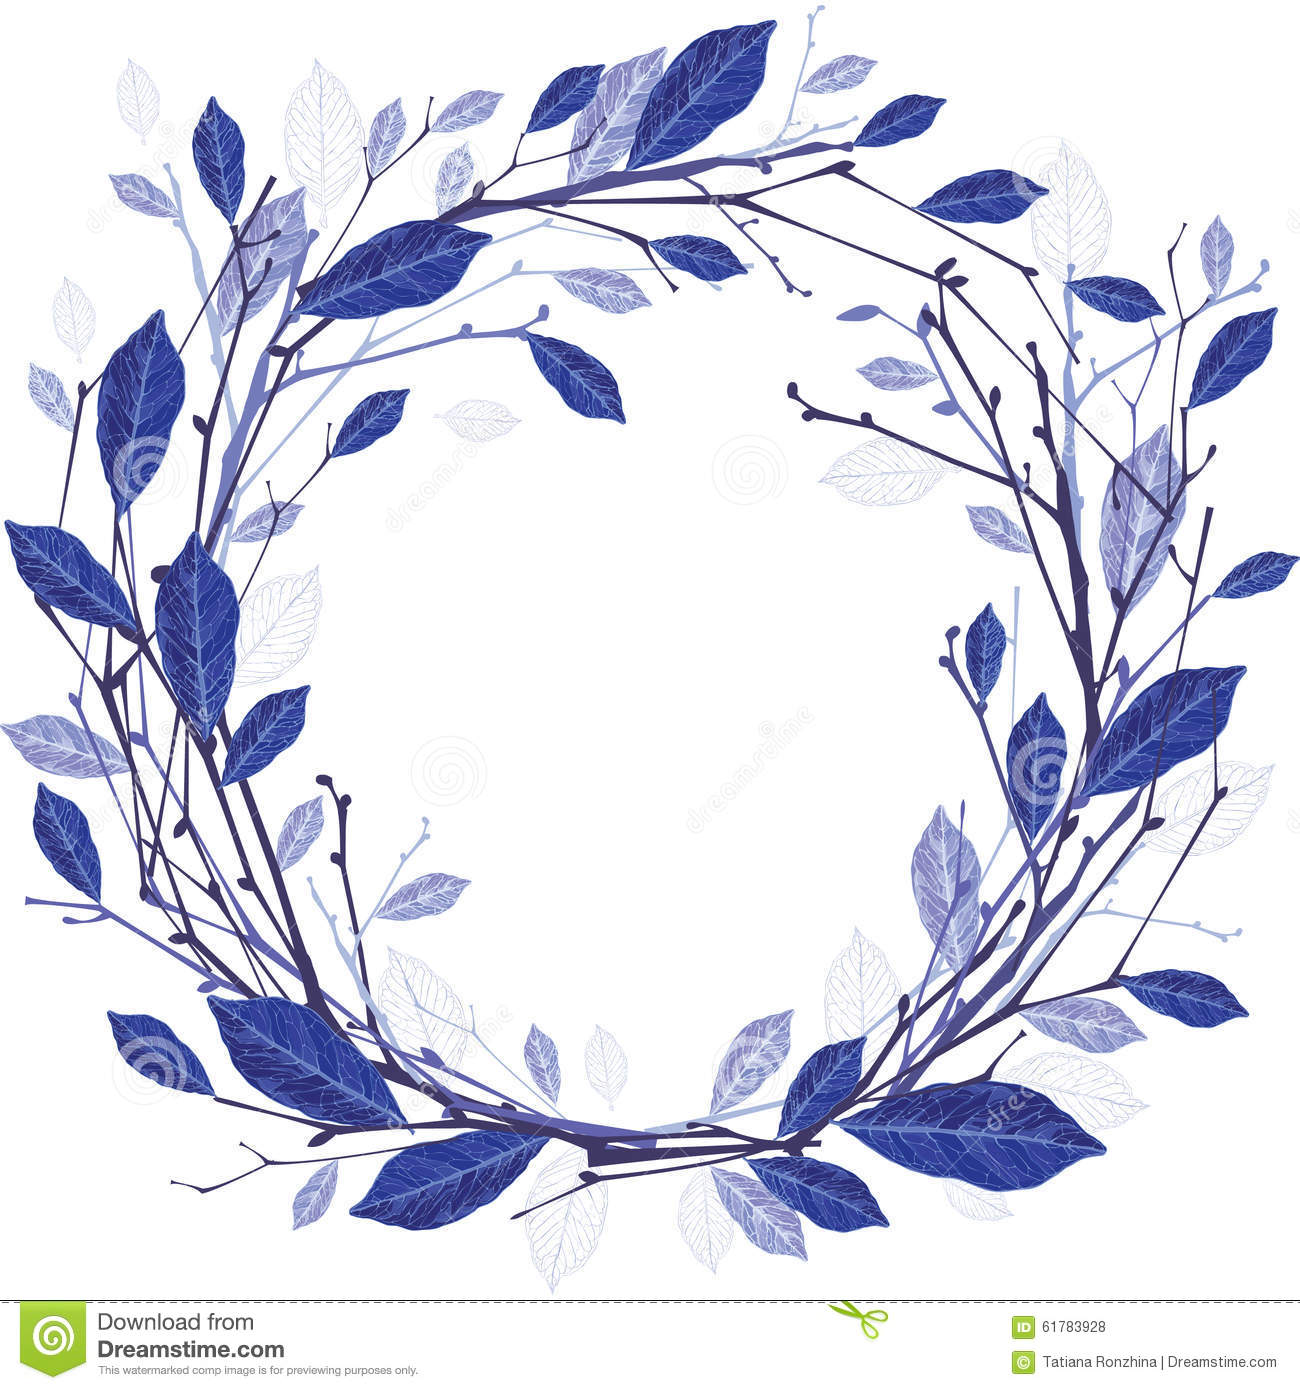 Winter Wreath Of Twigs And Leaves Illustration Stock Vector.